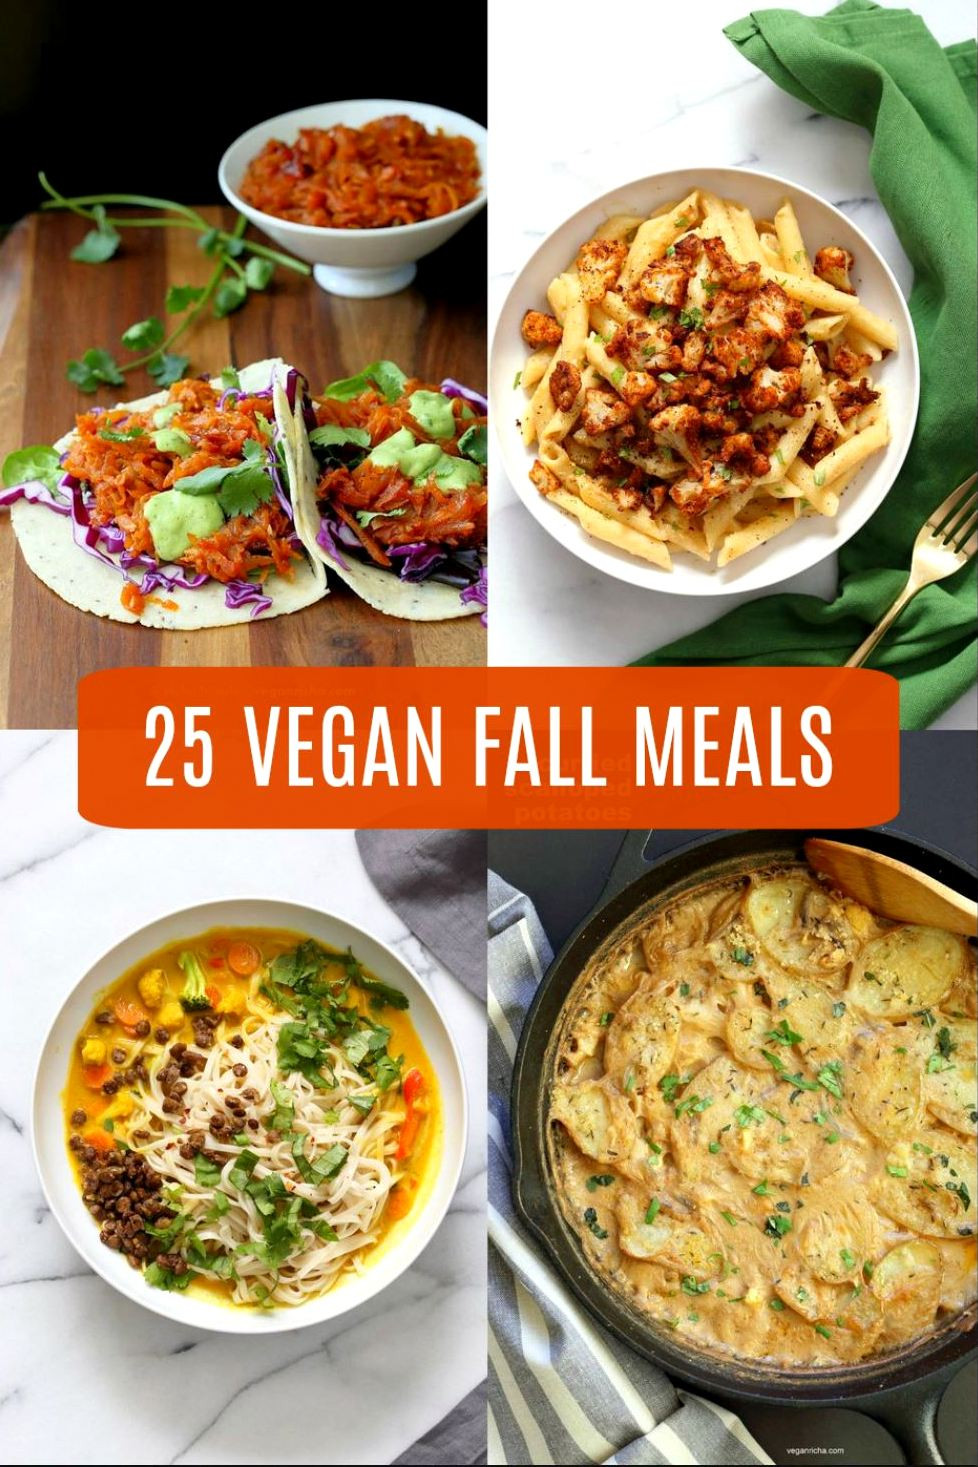 Vegan Fall Recipes  25 Vegan Fall Meals for a chilly day 1 Pot Gluten free